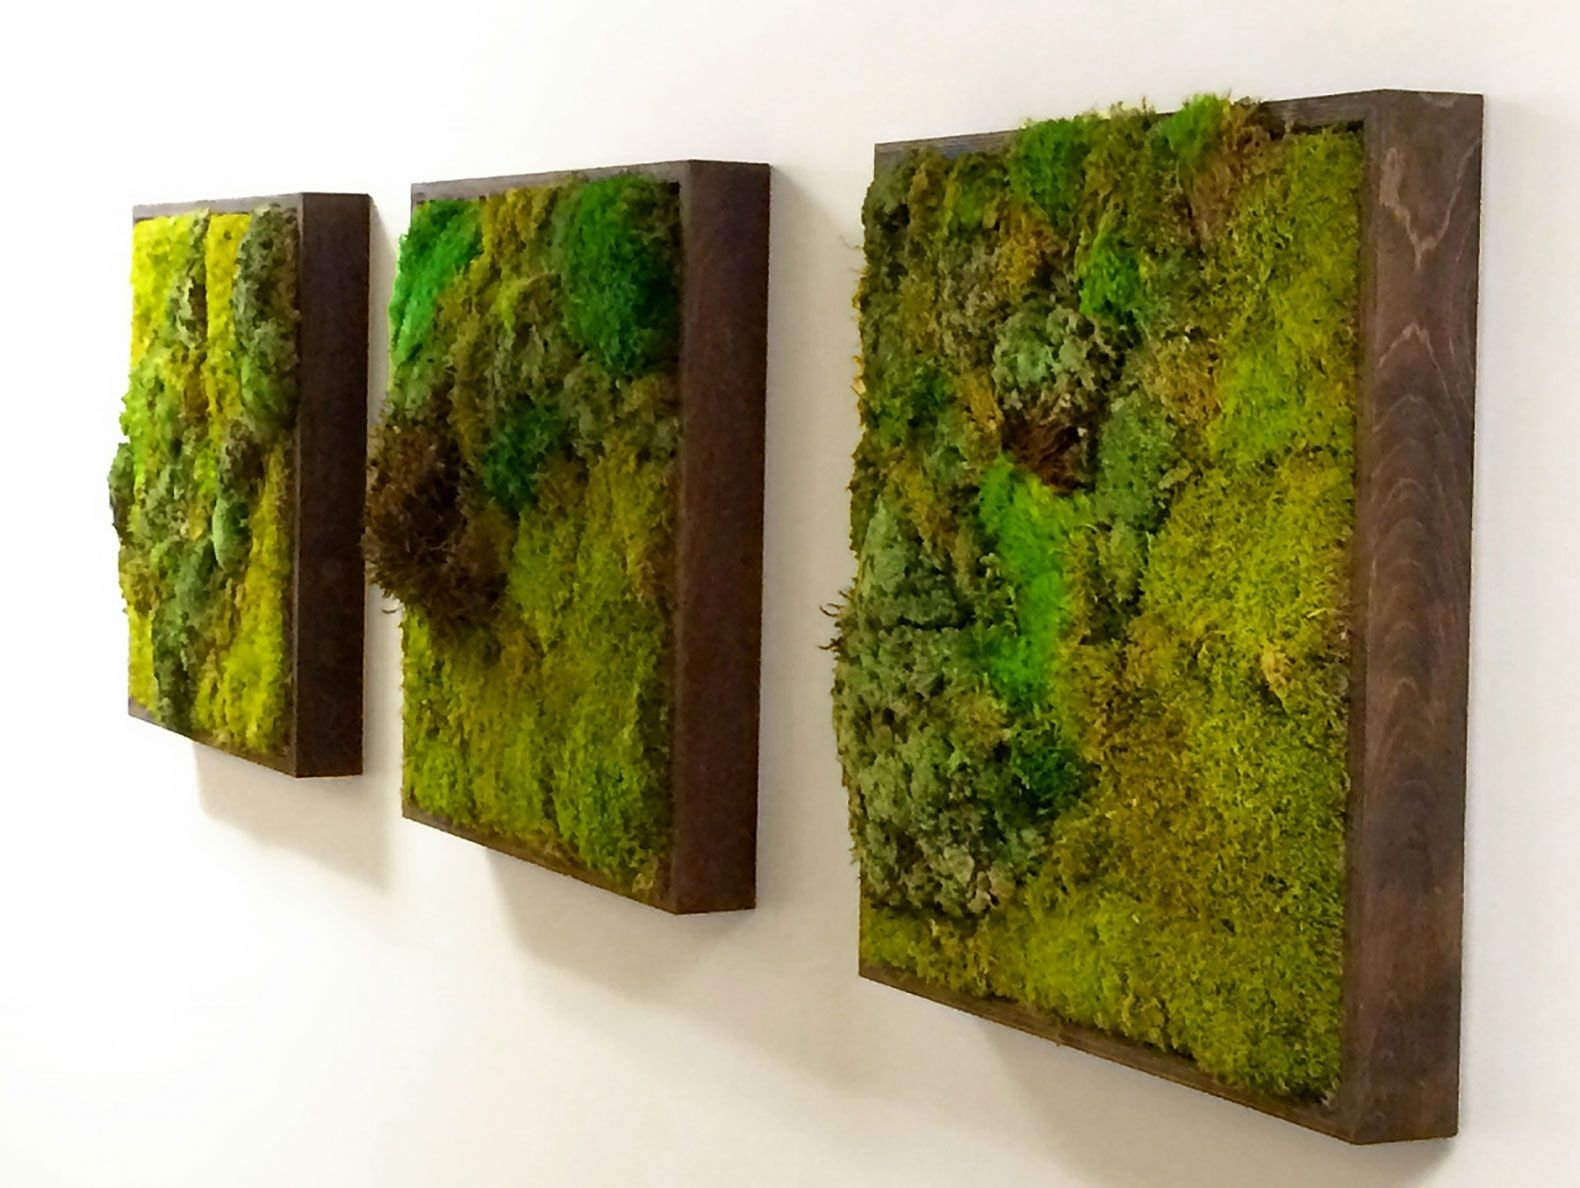 Moss Walls: The Newest Trend In Biophilic Interiors | Art 3 X For Best And Newest Moss Wall Art (View 3 of 20)